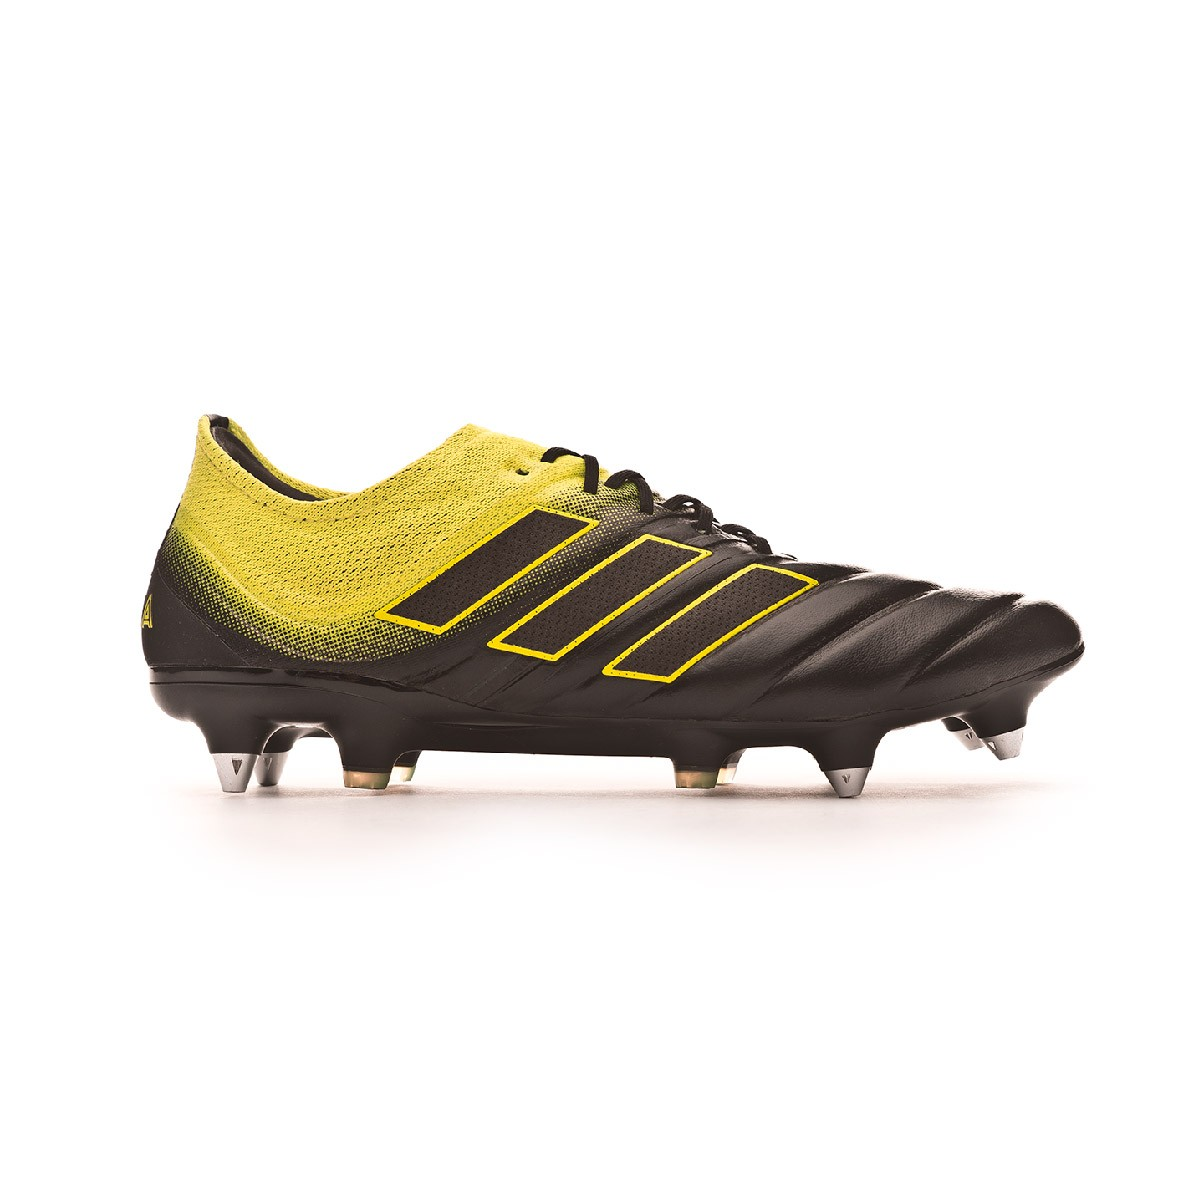 Adidas Scarpe Calcio Football Copa 19.1 FG Top di Gamma